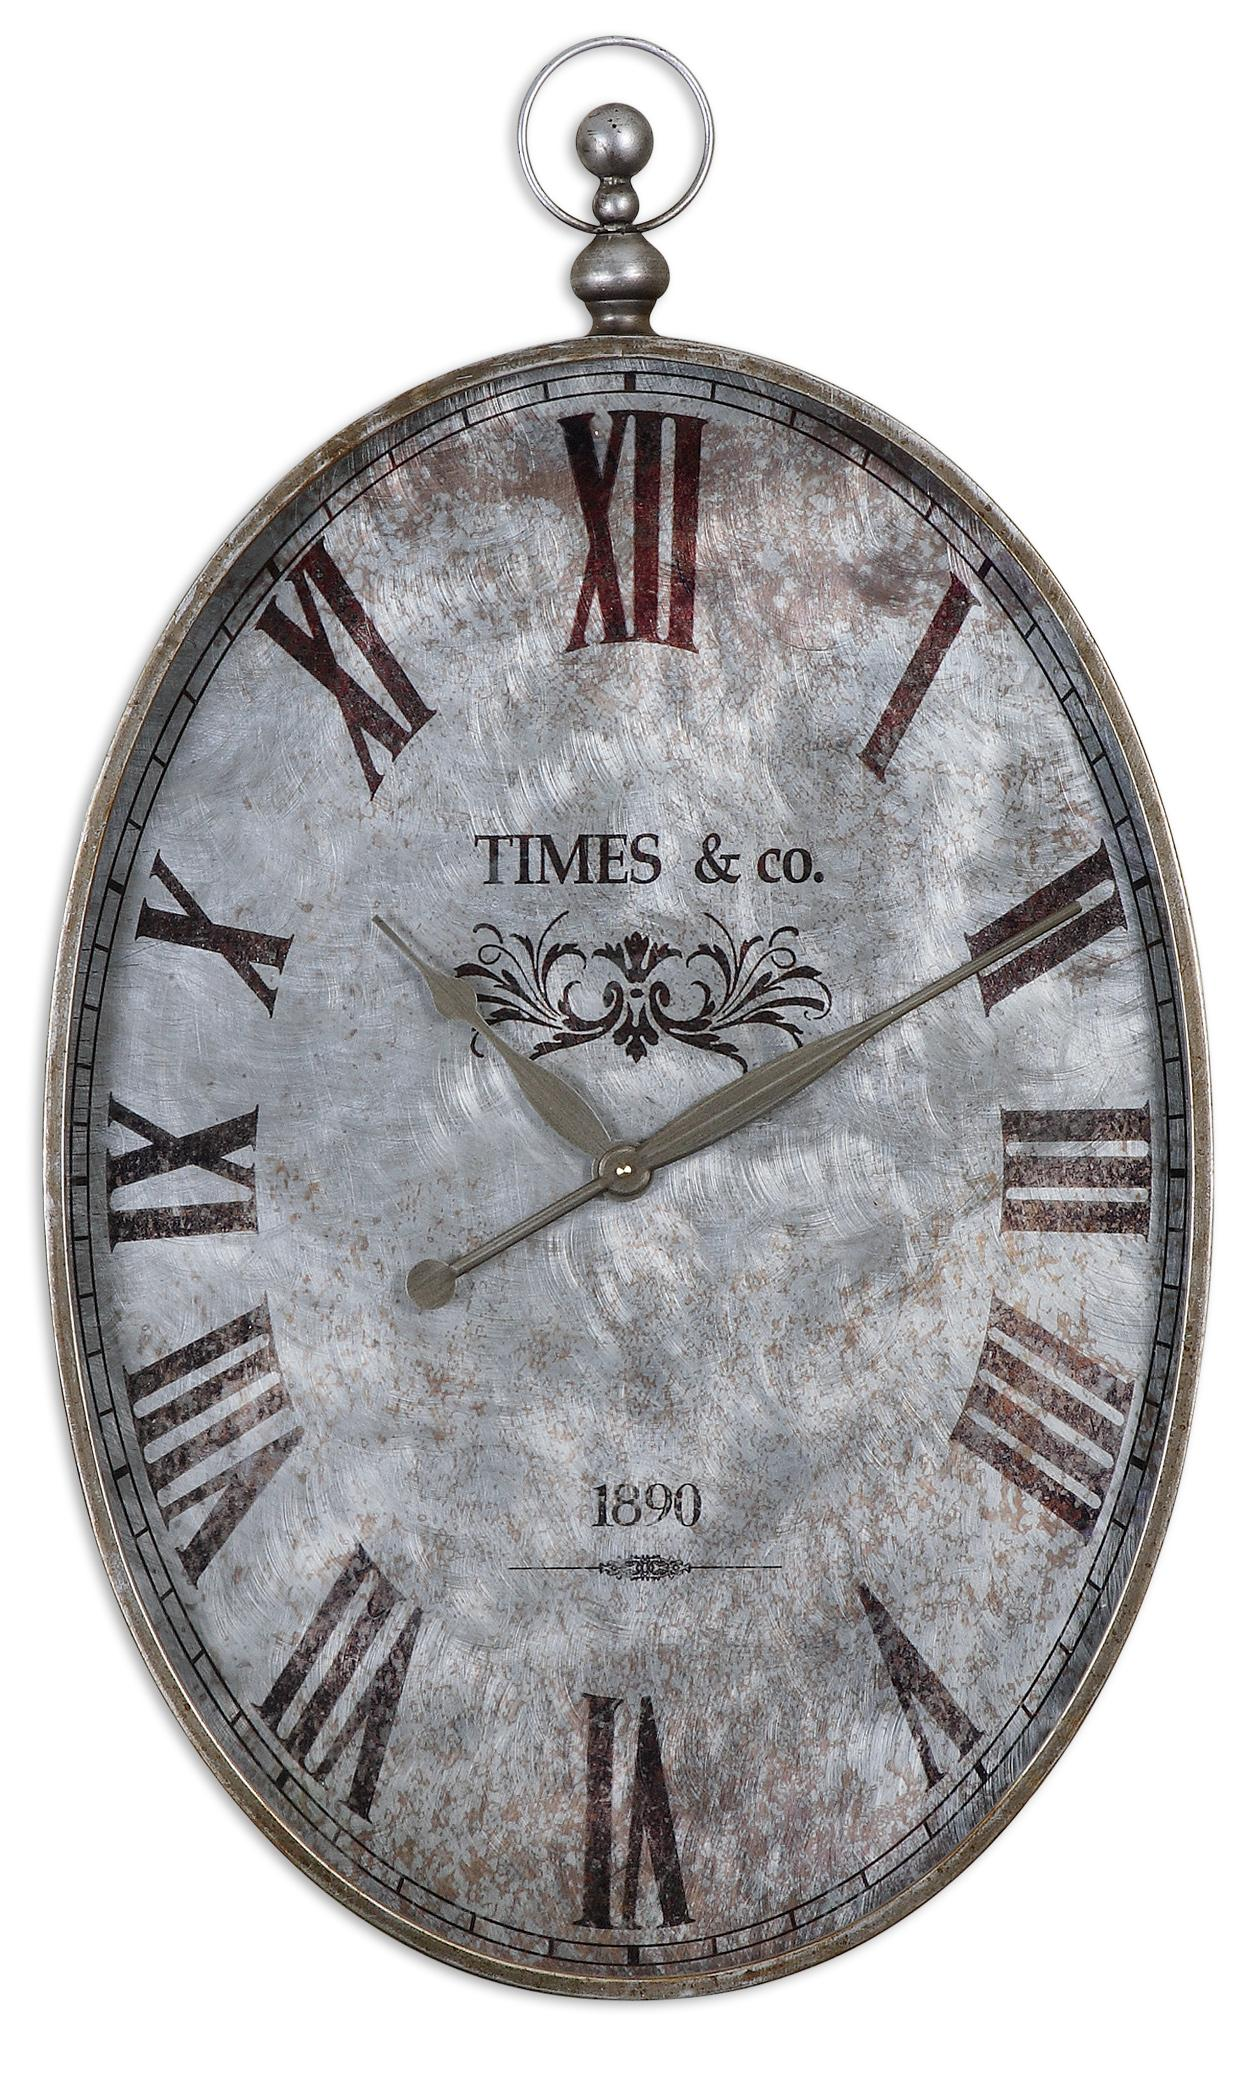 Uttermost Clocks Argento Antique Wall Clock - Item Number: 06642